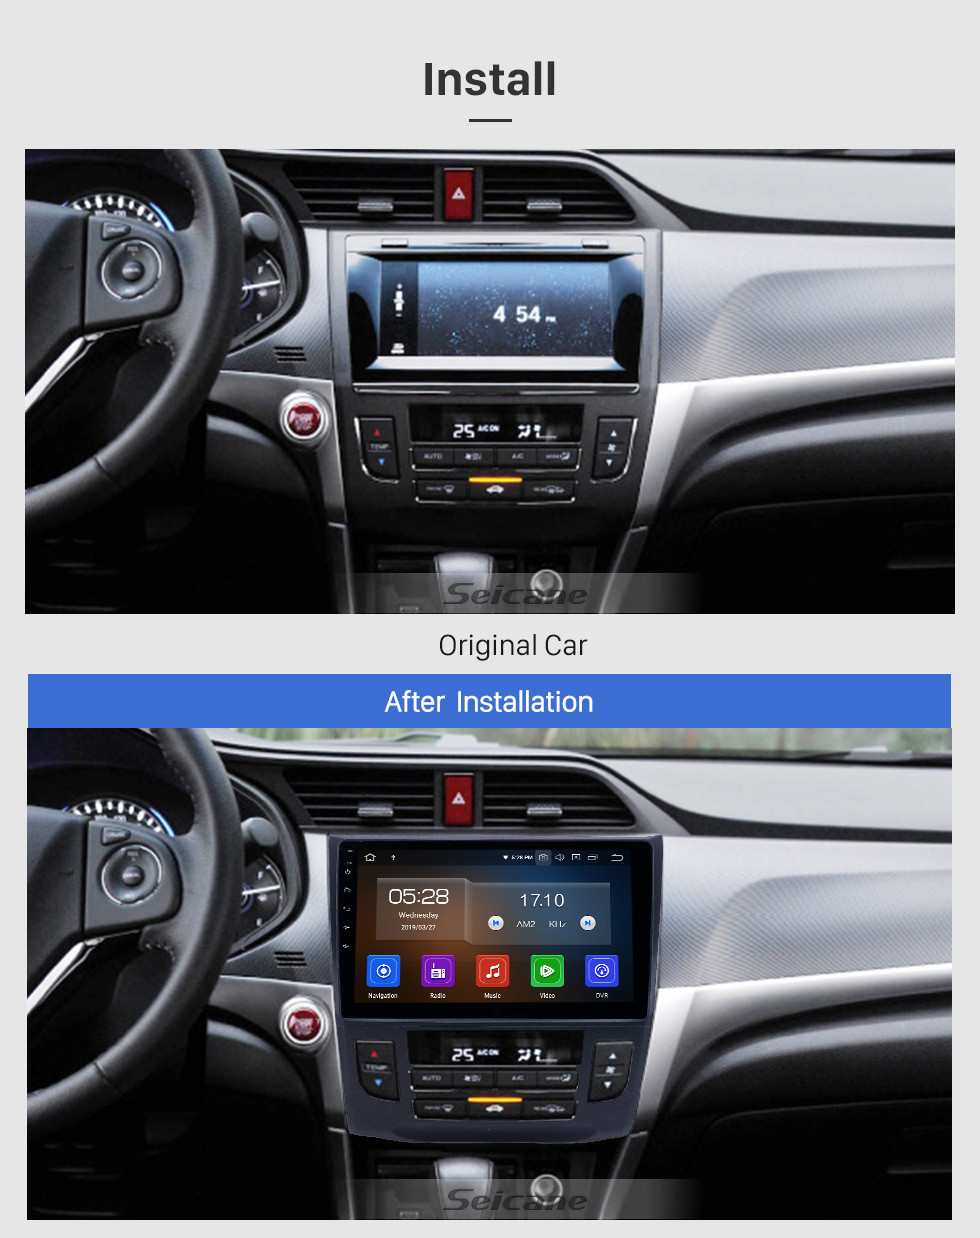 Seicane 10.1 inch Android 10.0 GPS Navigation Radio for 2013-2019 Honda Crider Auto A/C with HD Touchscreen Carplay Bluetooth support OBD2